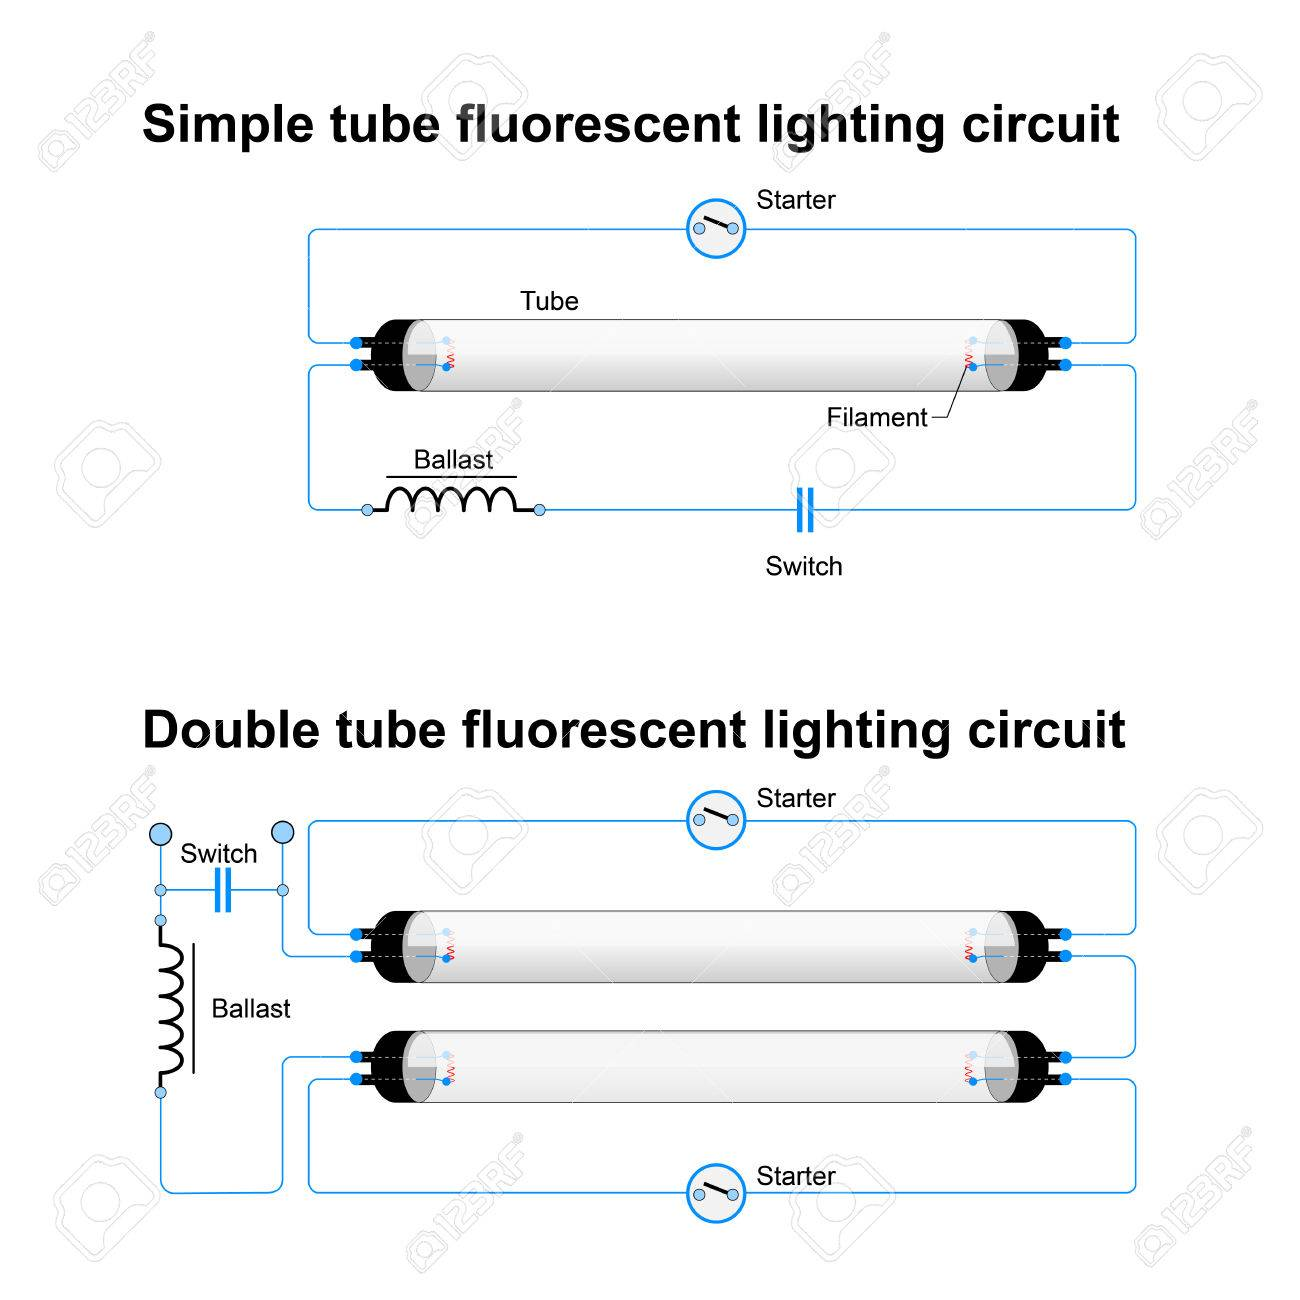 Dual Fluorescent Light Ballast Wiring Diagram Trusted Diagrams 4 Lamp T5 For 3 Lithonia Lighting